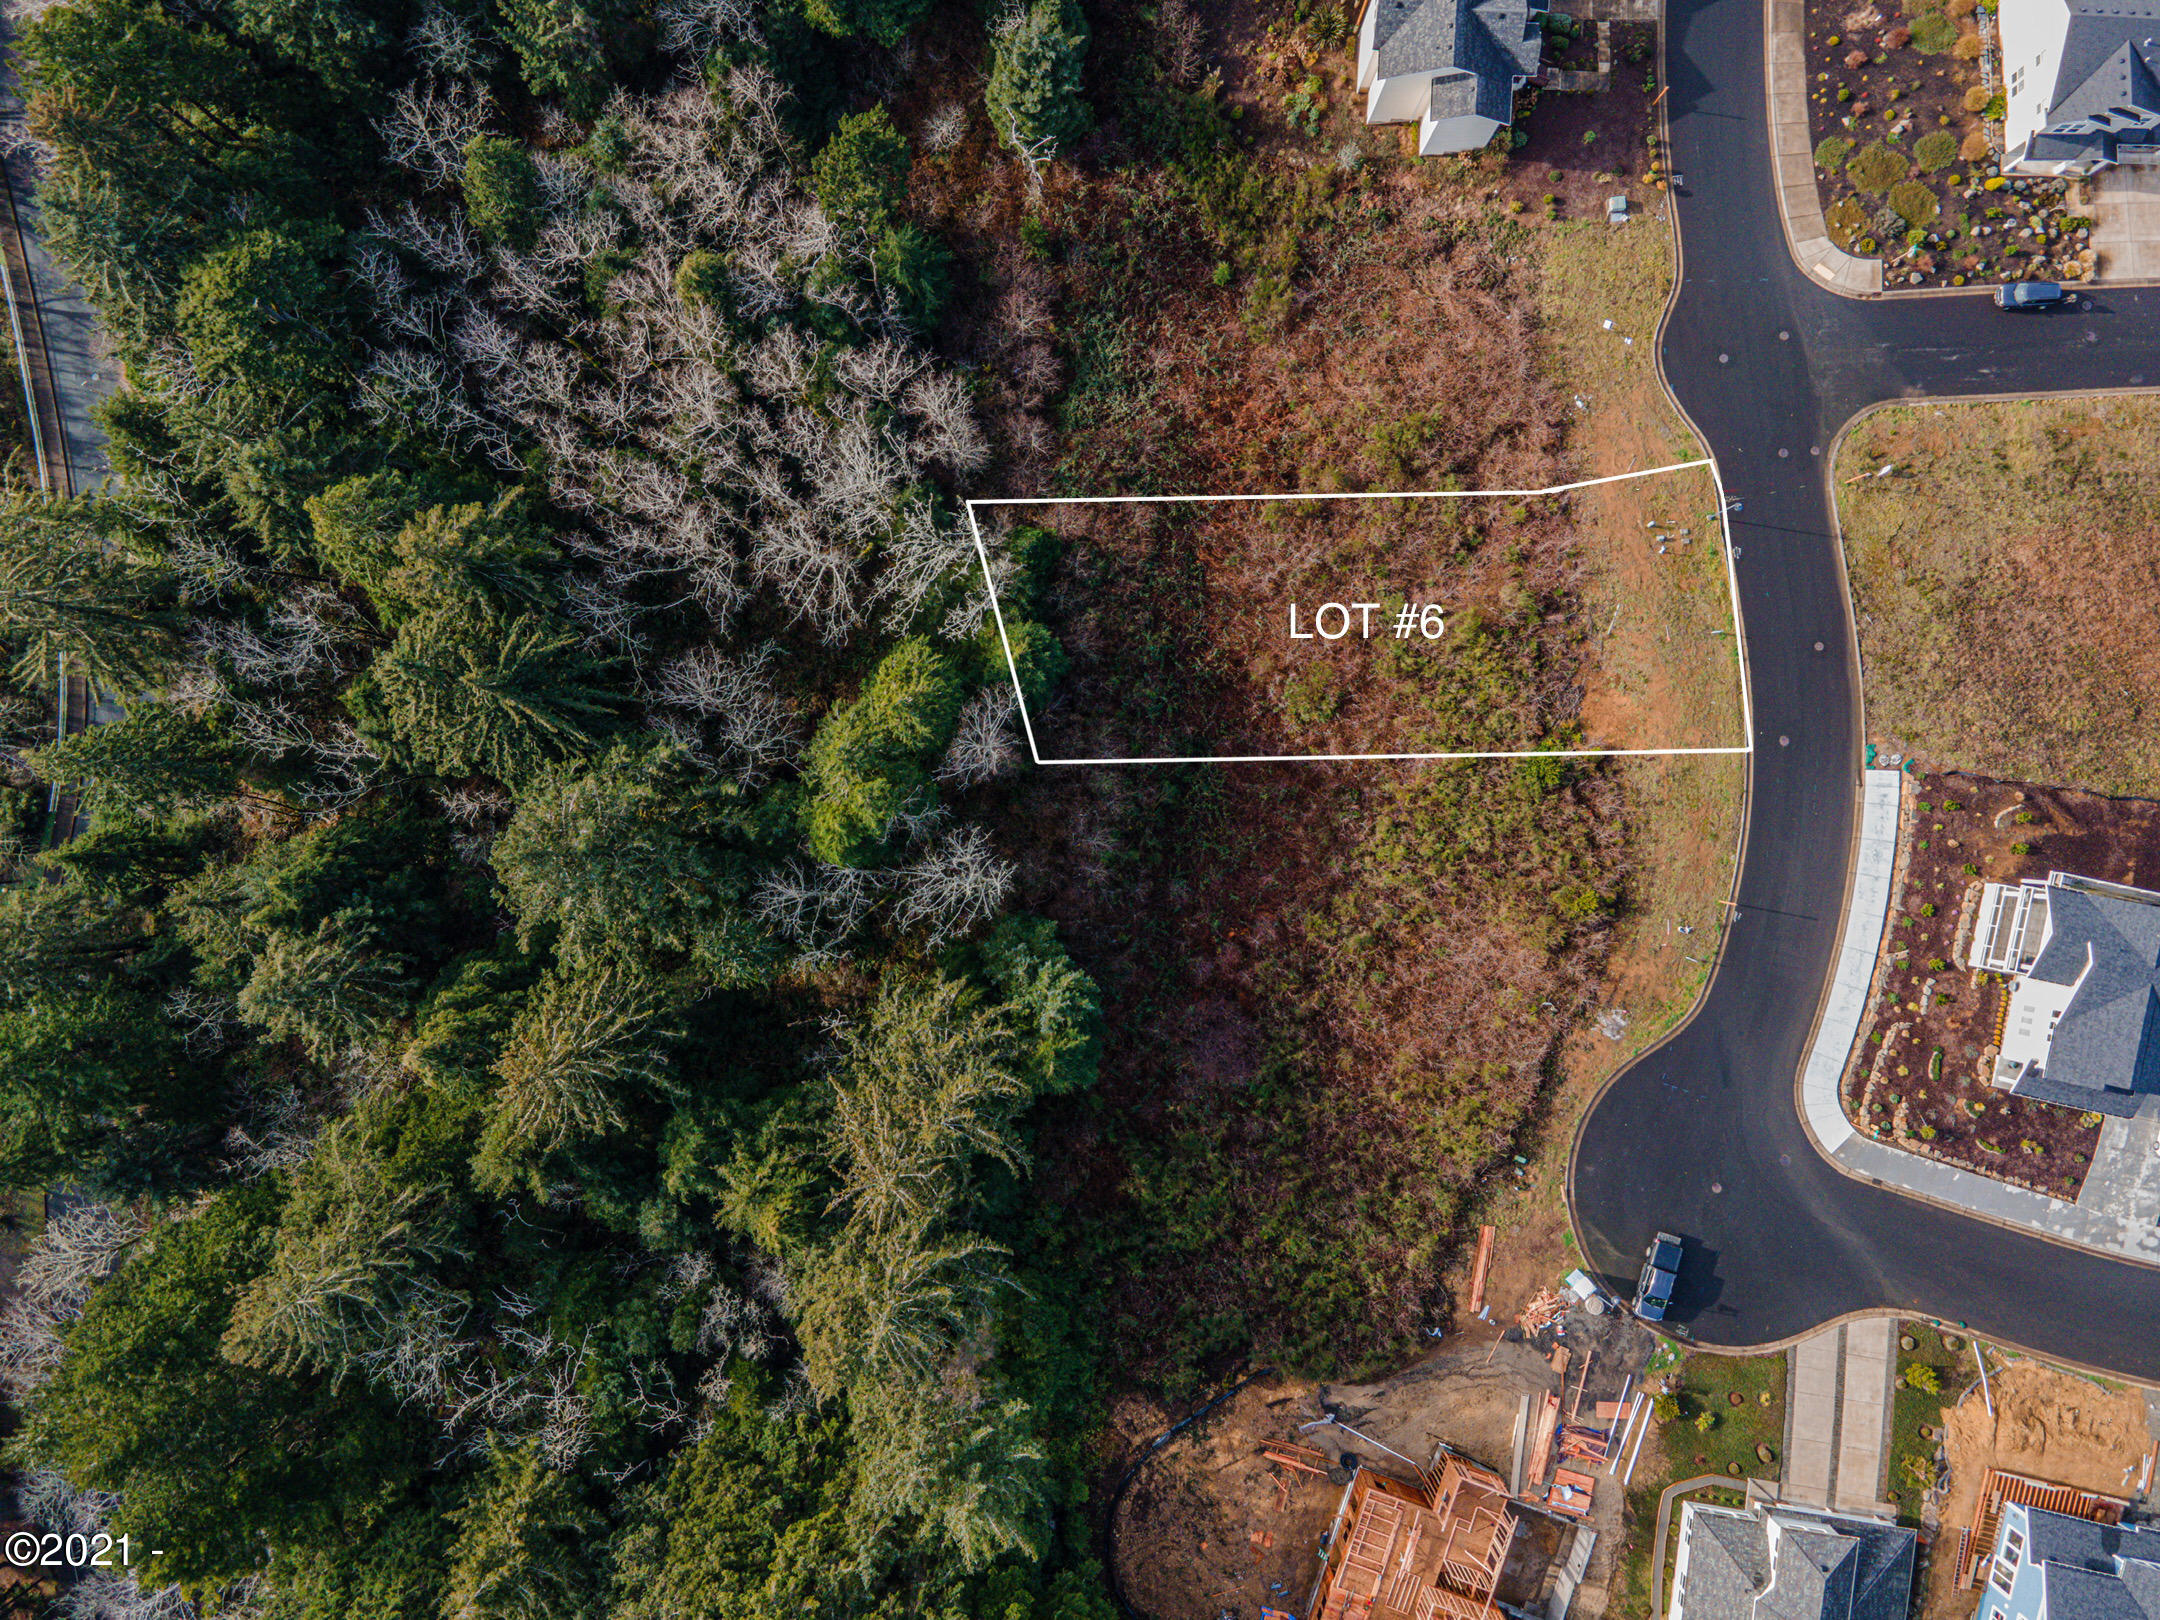 4300 BLK SE 43rd Street Lot 6, Lincoln City, OR 97367 - DJI_0516